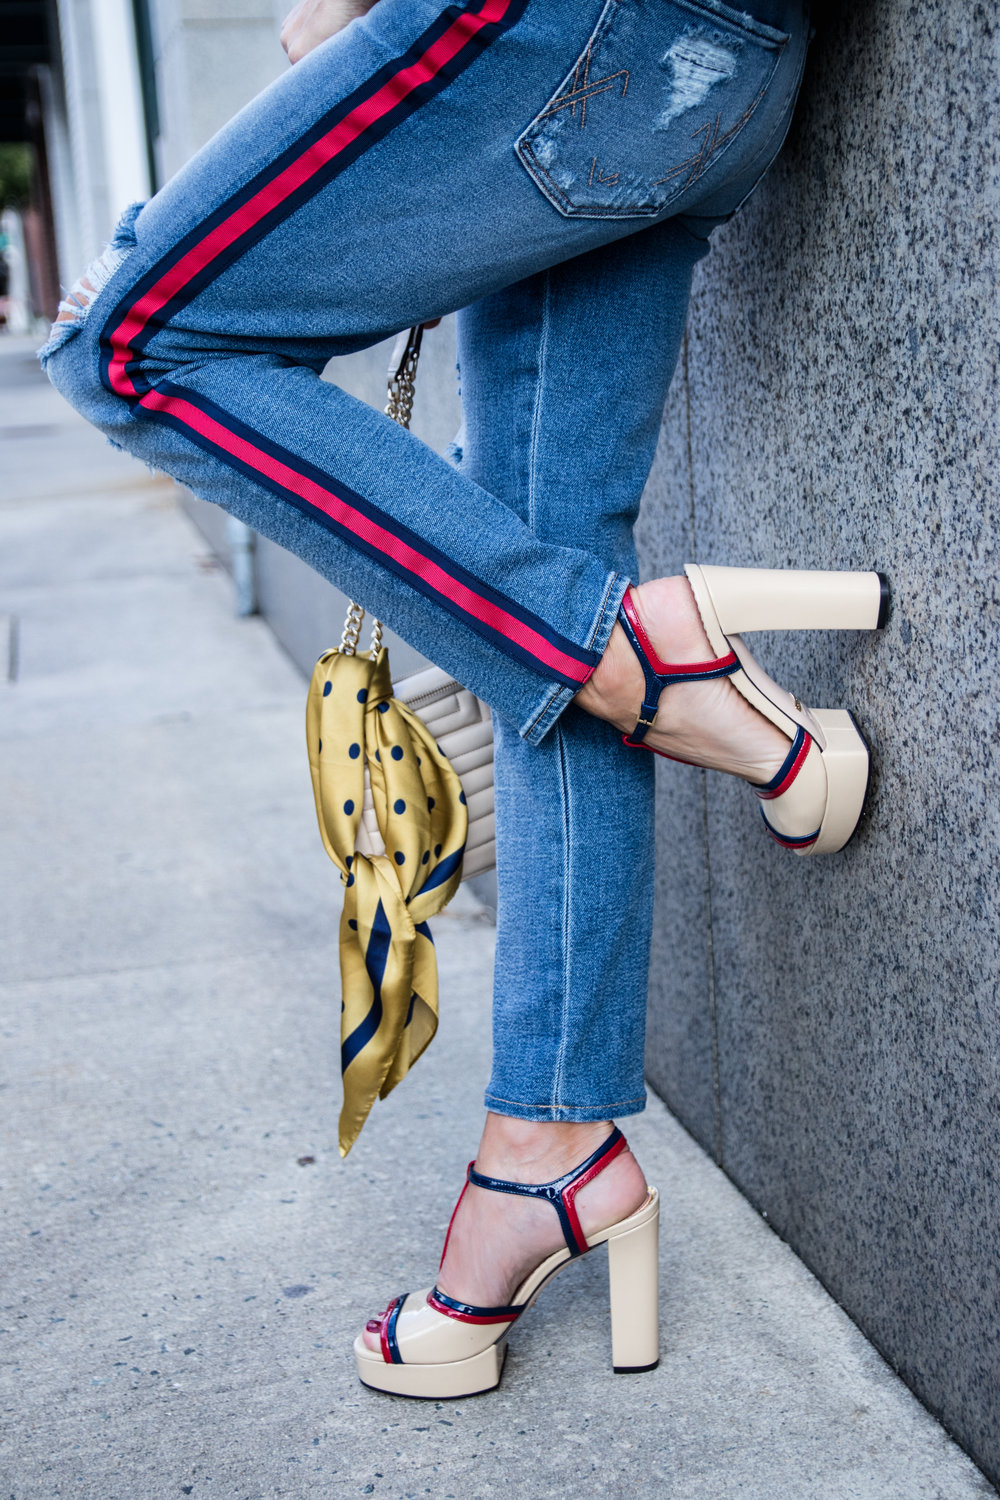 Gucci Sandals for Spring